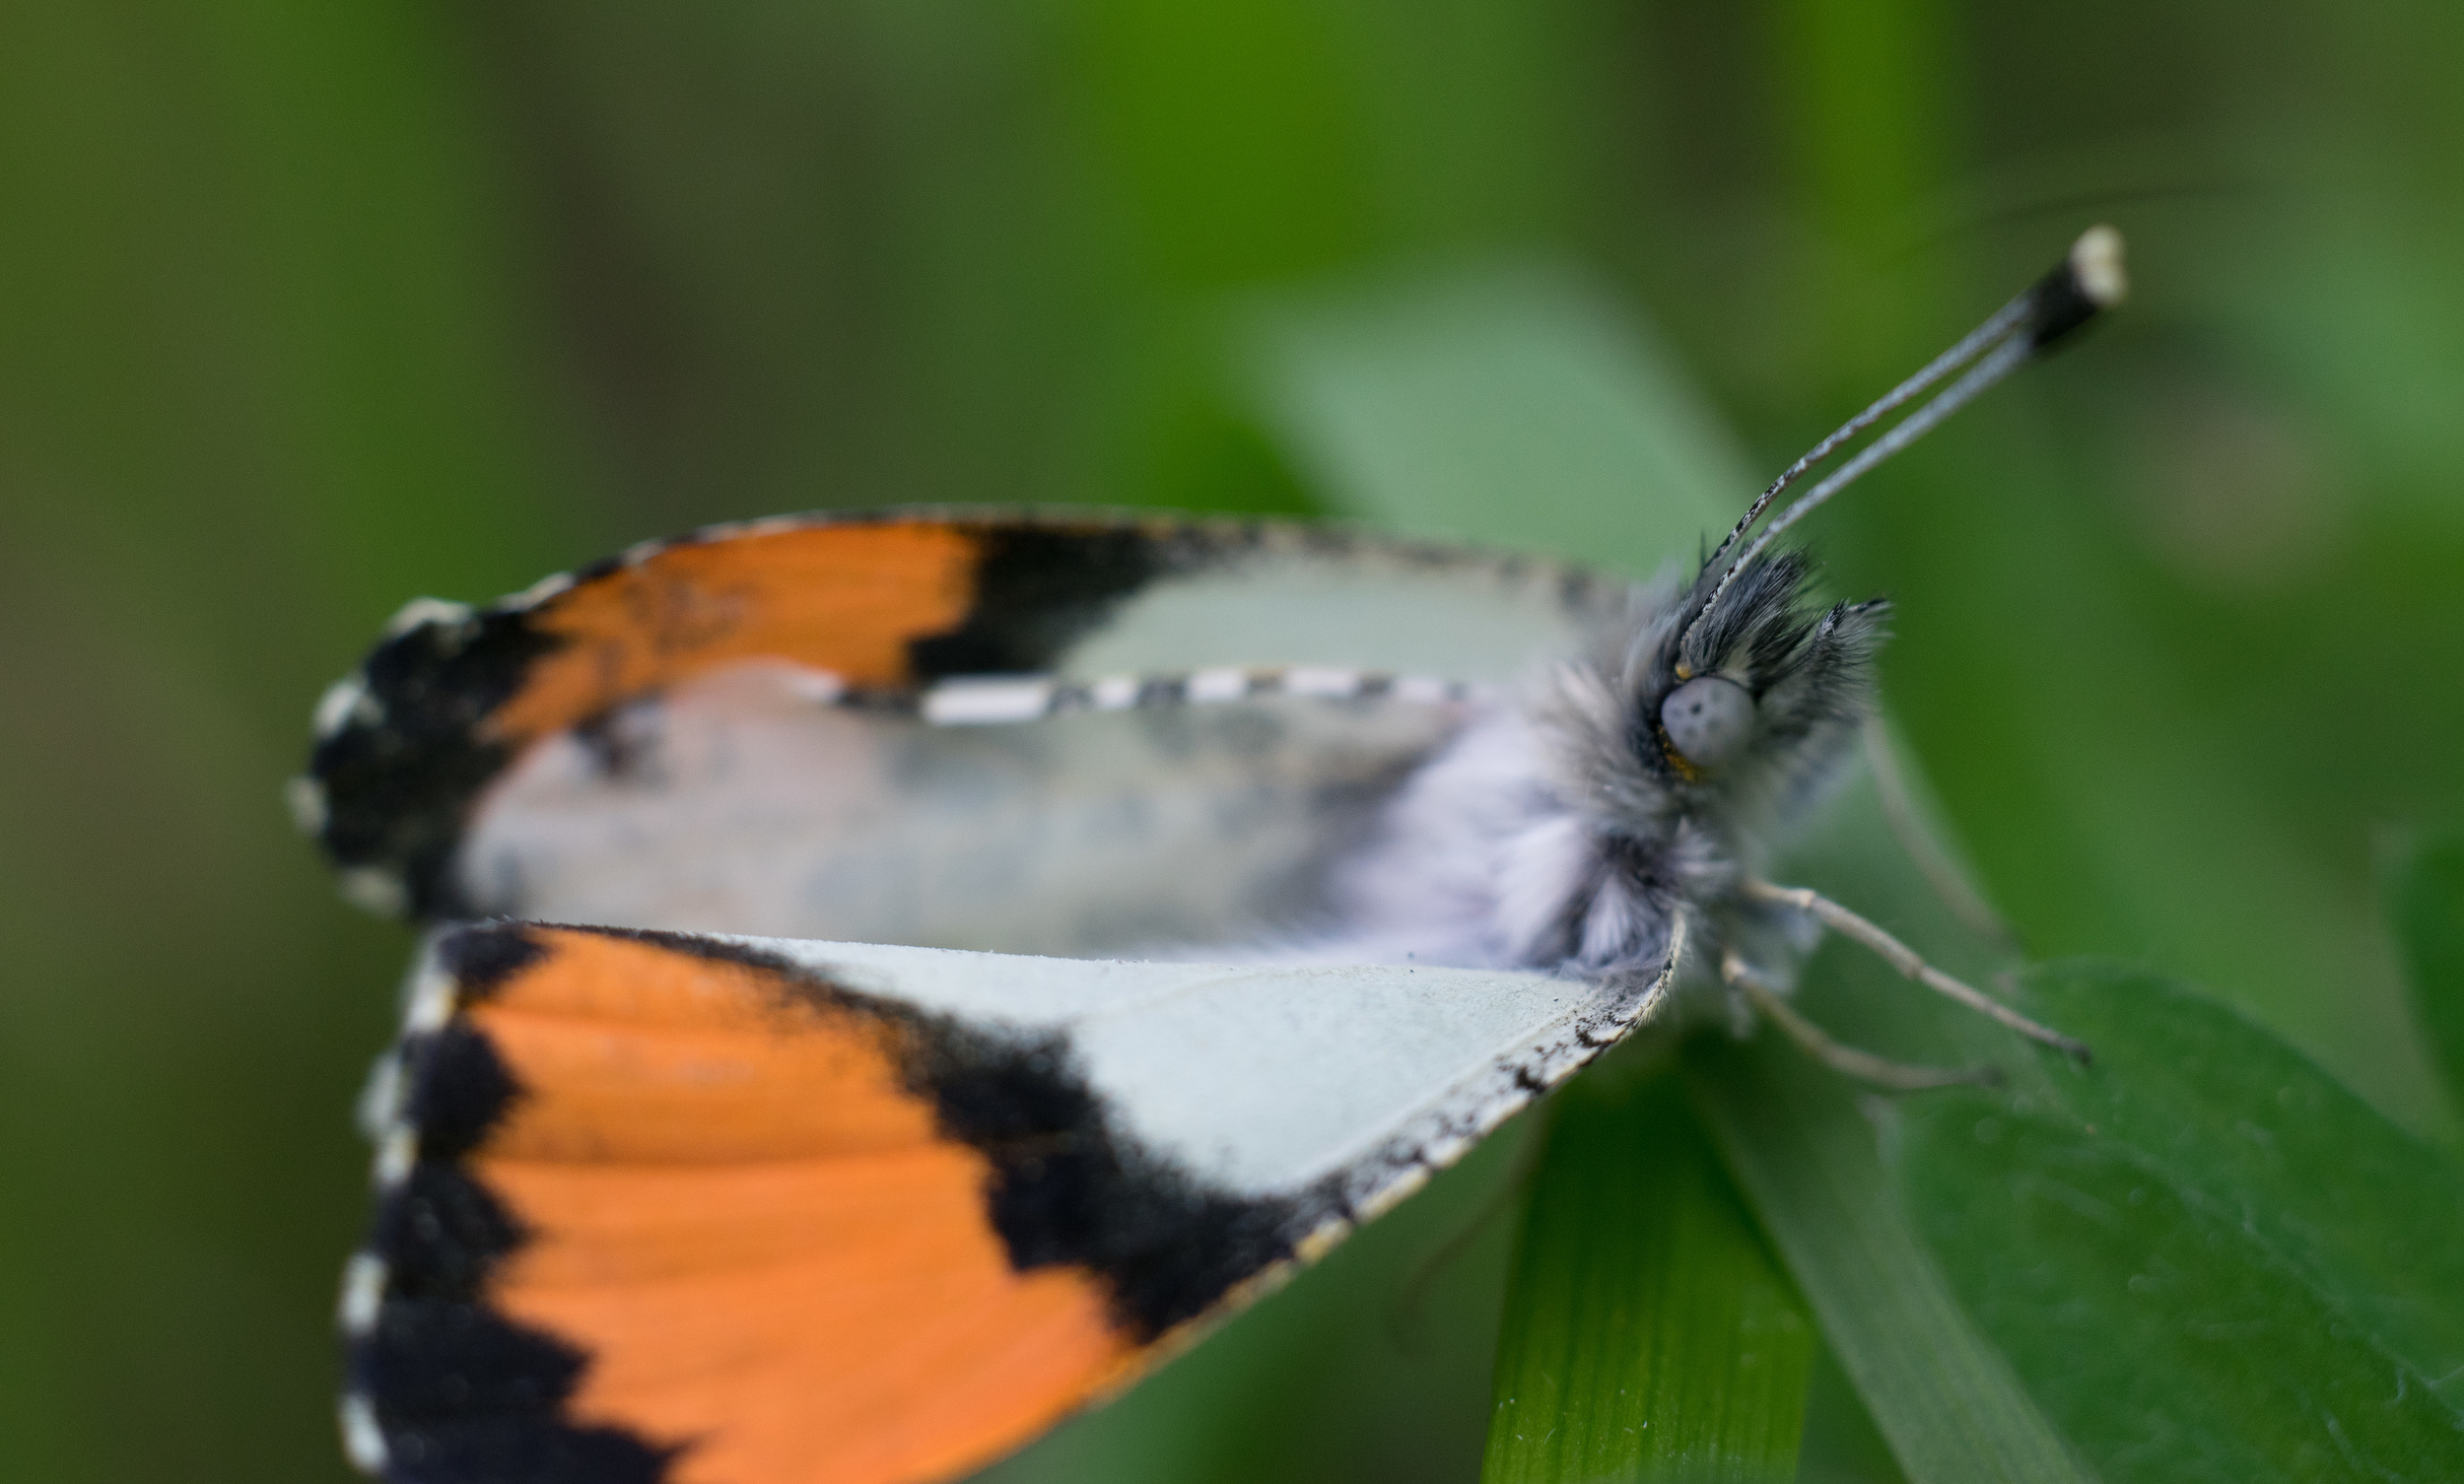 A recently eclosed (emerged) Sara Orangetip butterfly. It may have a slightly misshapen wing, which was why it couldn't fly. Photo by Tony Iwane.